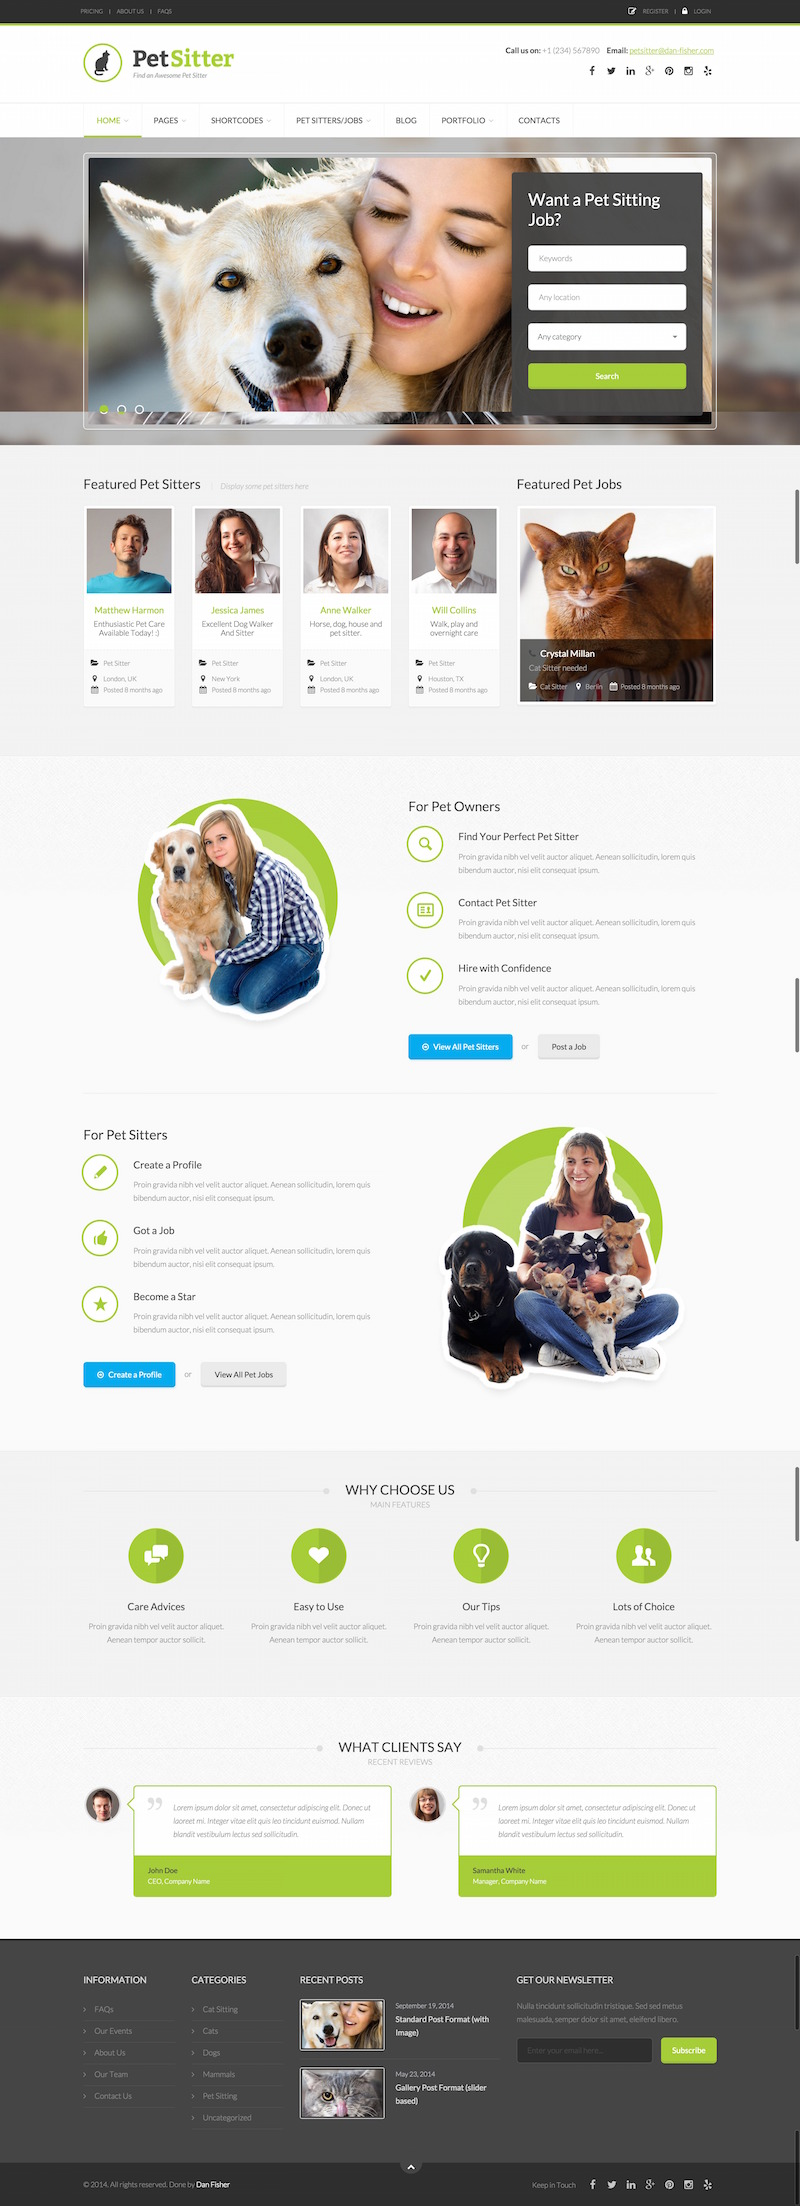 petsitter-wordpress-theme